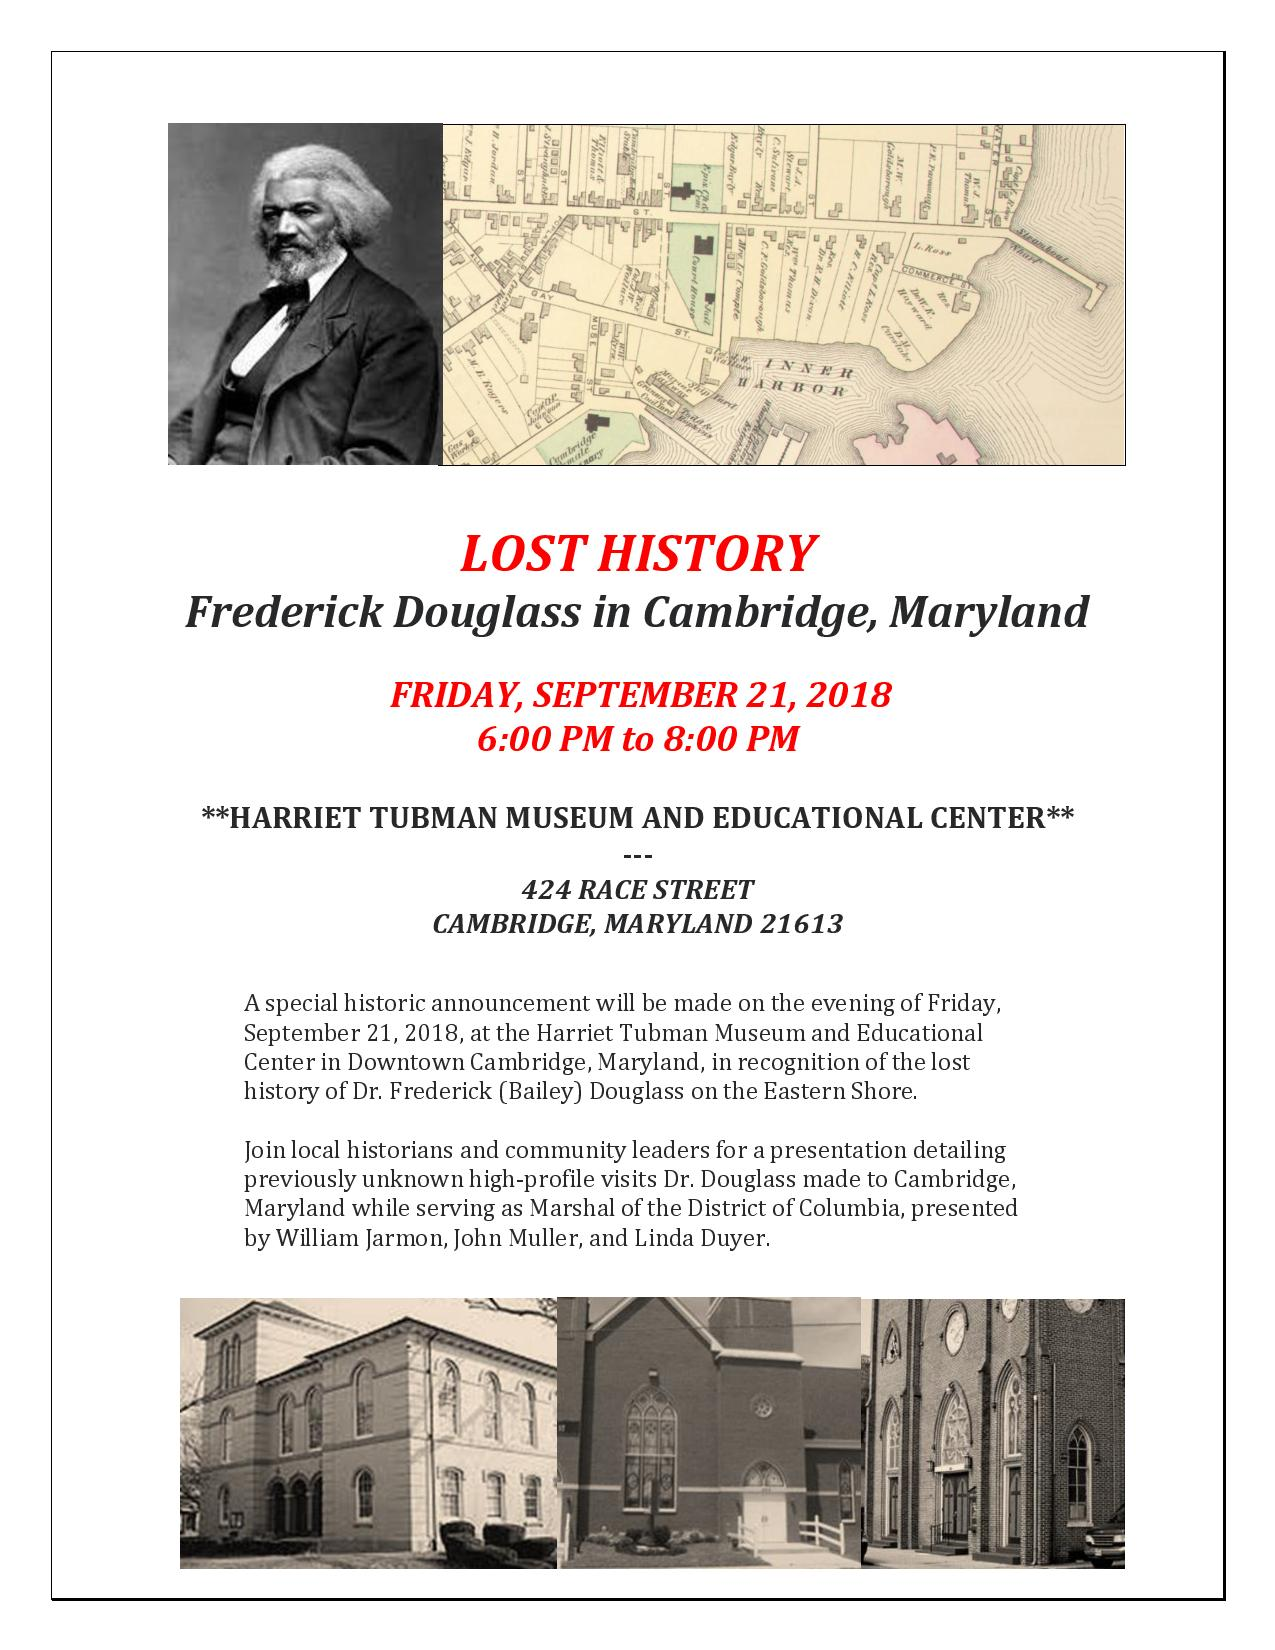 FLYER _ Lost History _ Frederick Douglass in Cambridge _ HT Museum _ 2018 09 21 Flyer [LD ^0 JM]-page-001